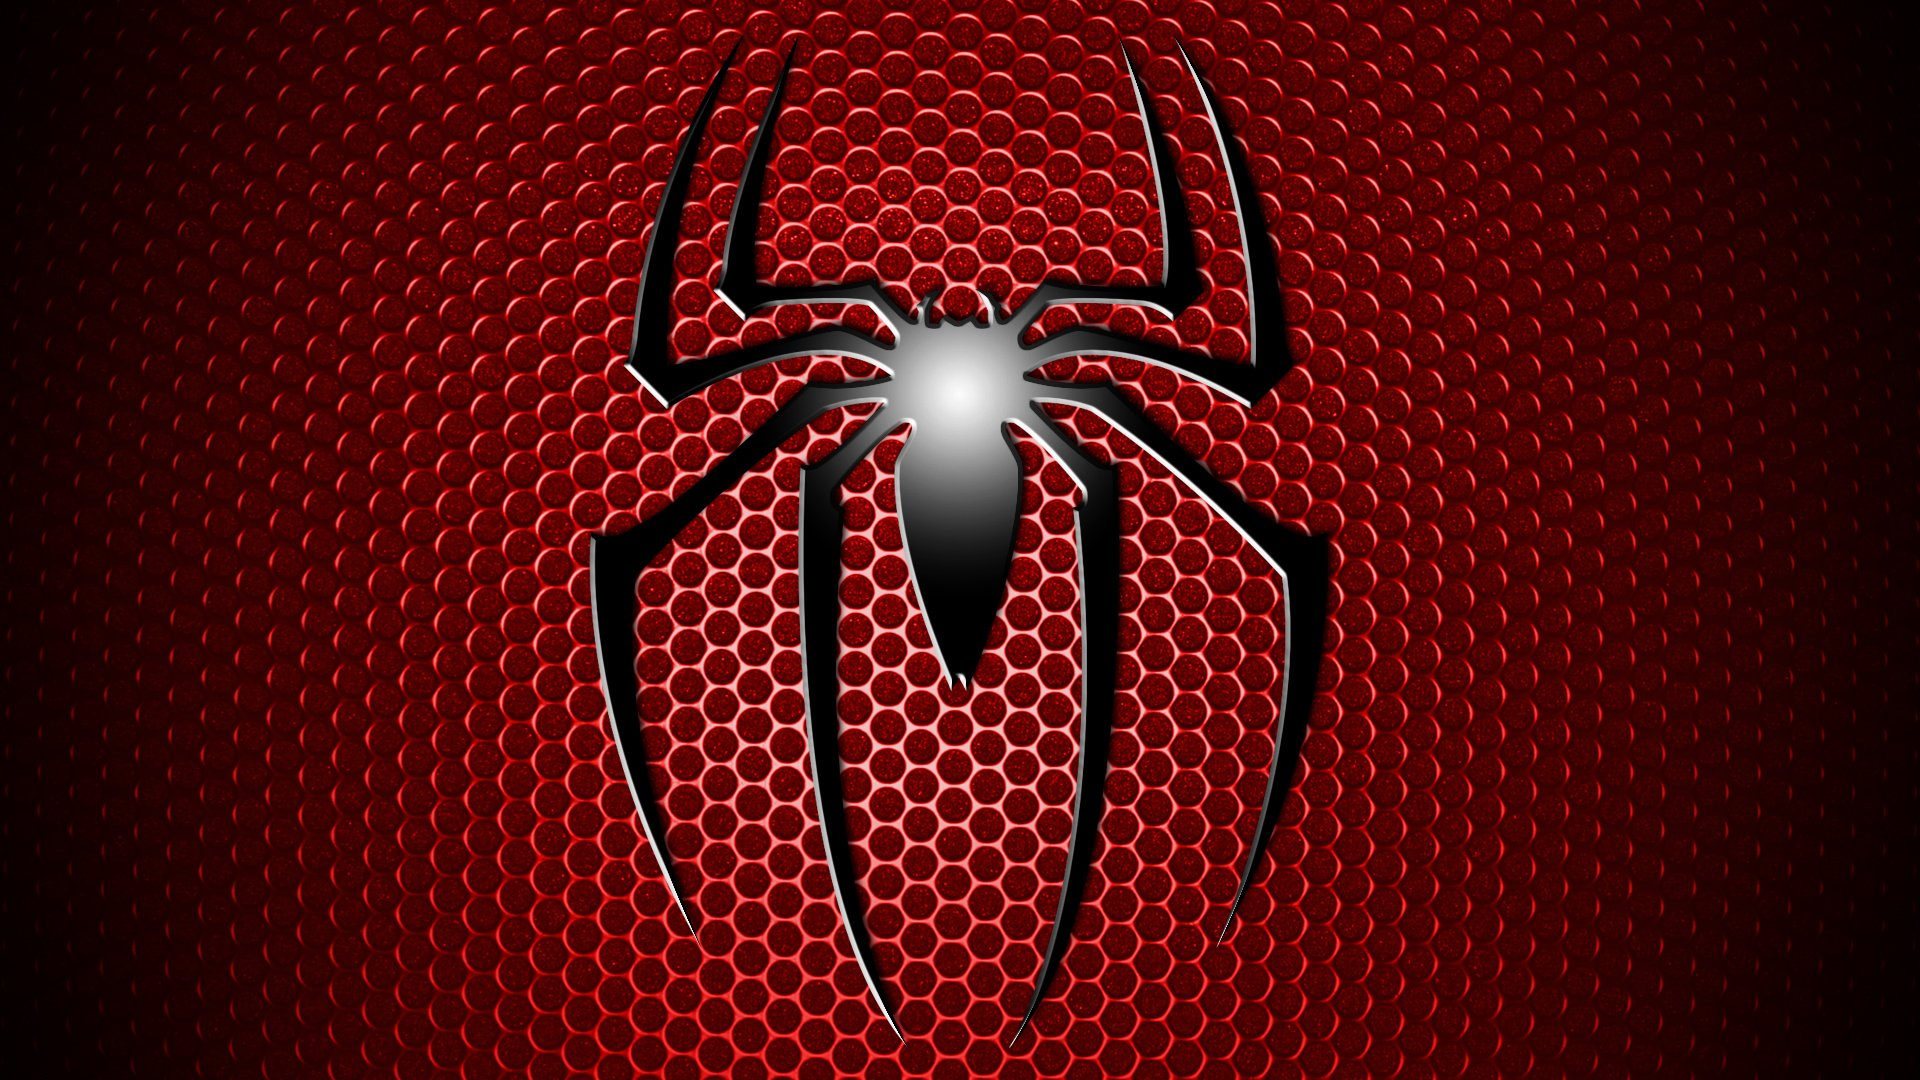 1091 Spider-Man HD Wallpapers   Backgrounds - Wallpaper Abyss